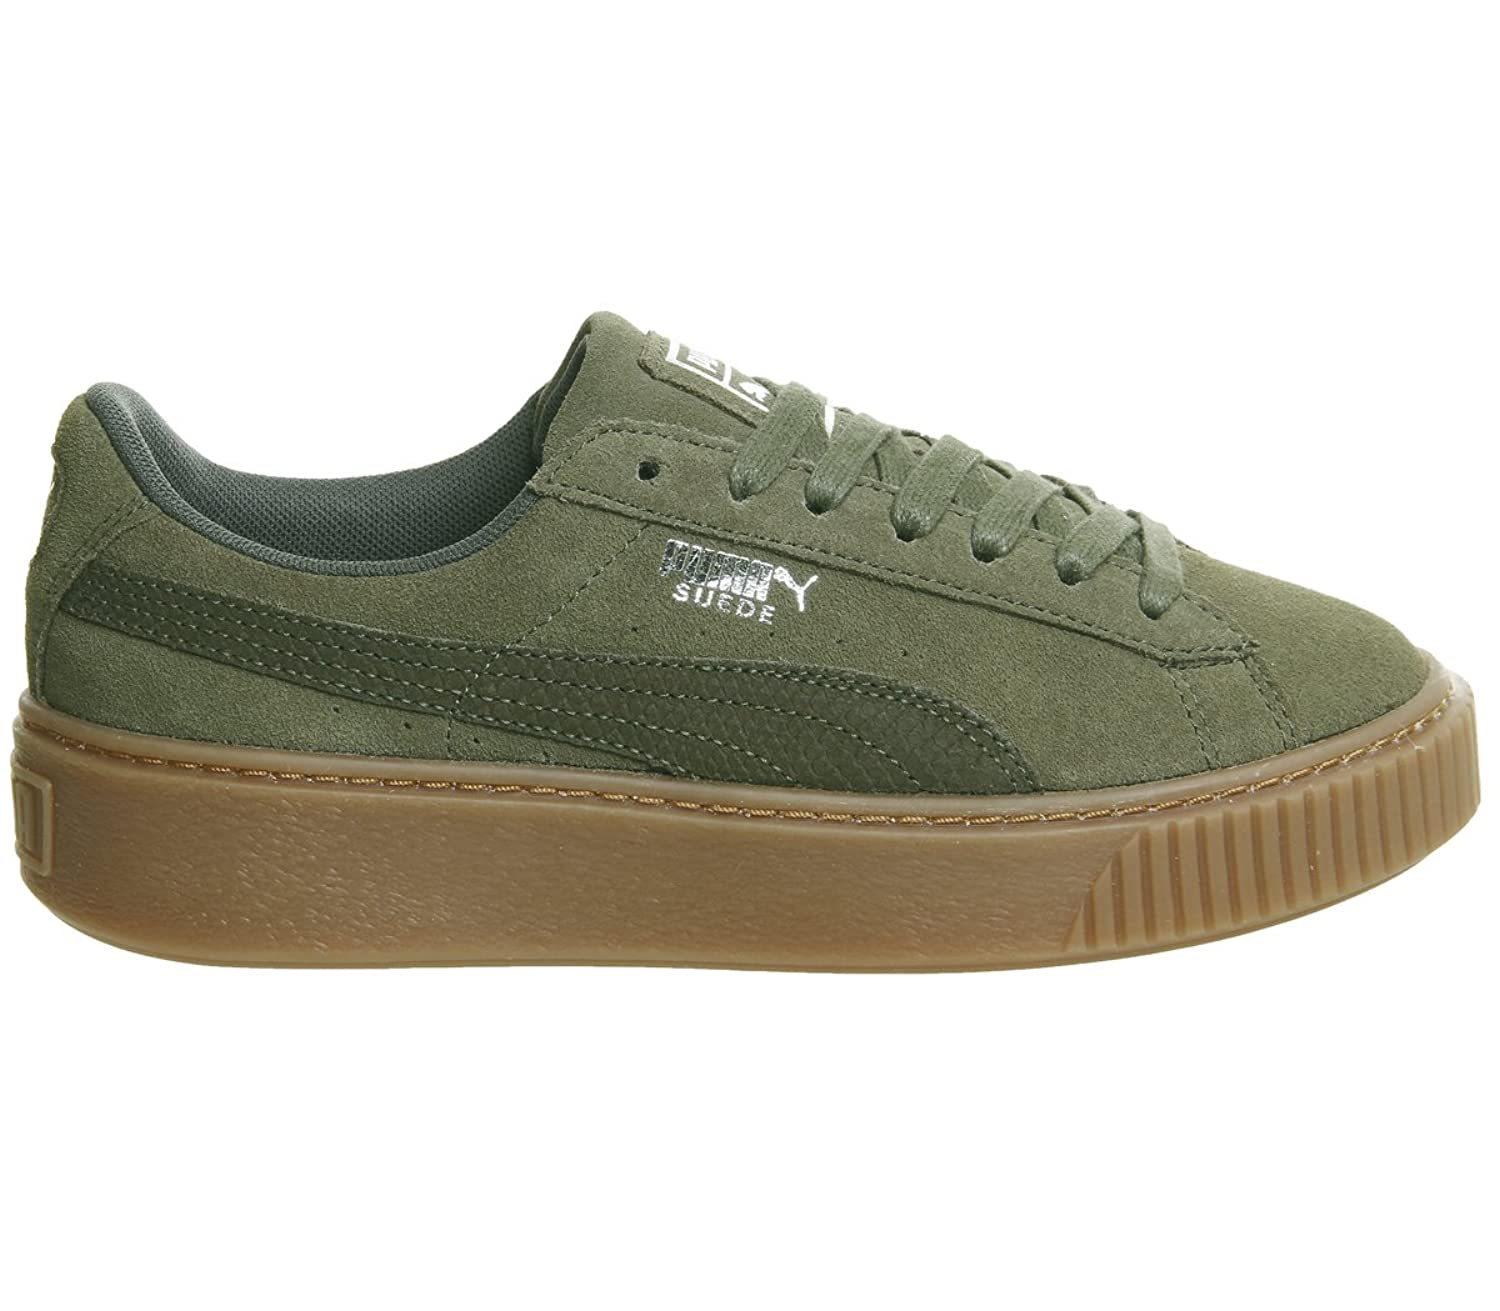 Puma Suede Platform Animal 36510903, Basket - 38 EU